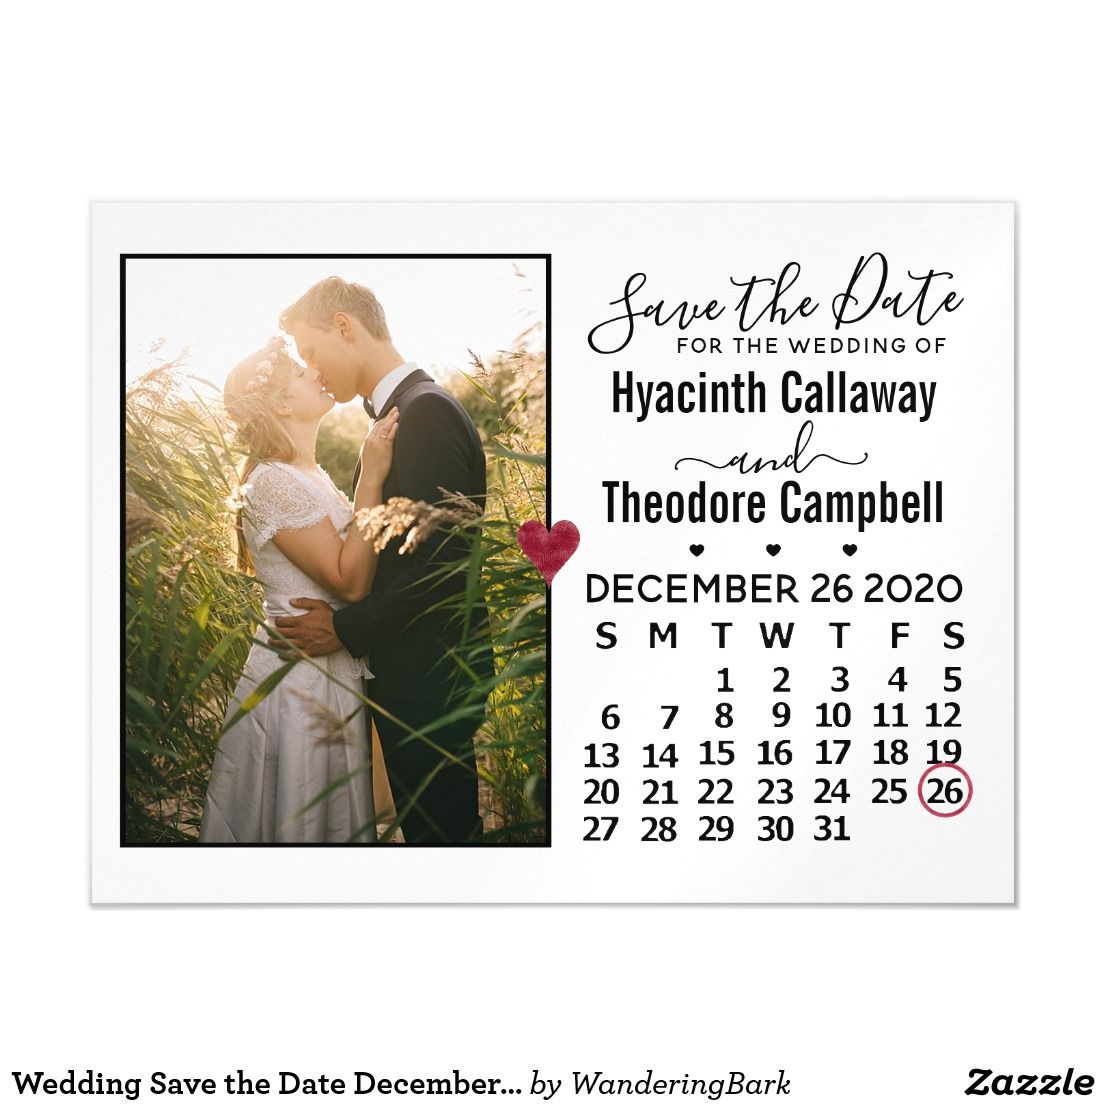 Wedding Save the Date December 2020 Calendar Photo